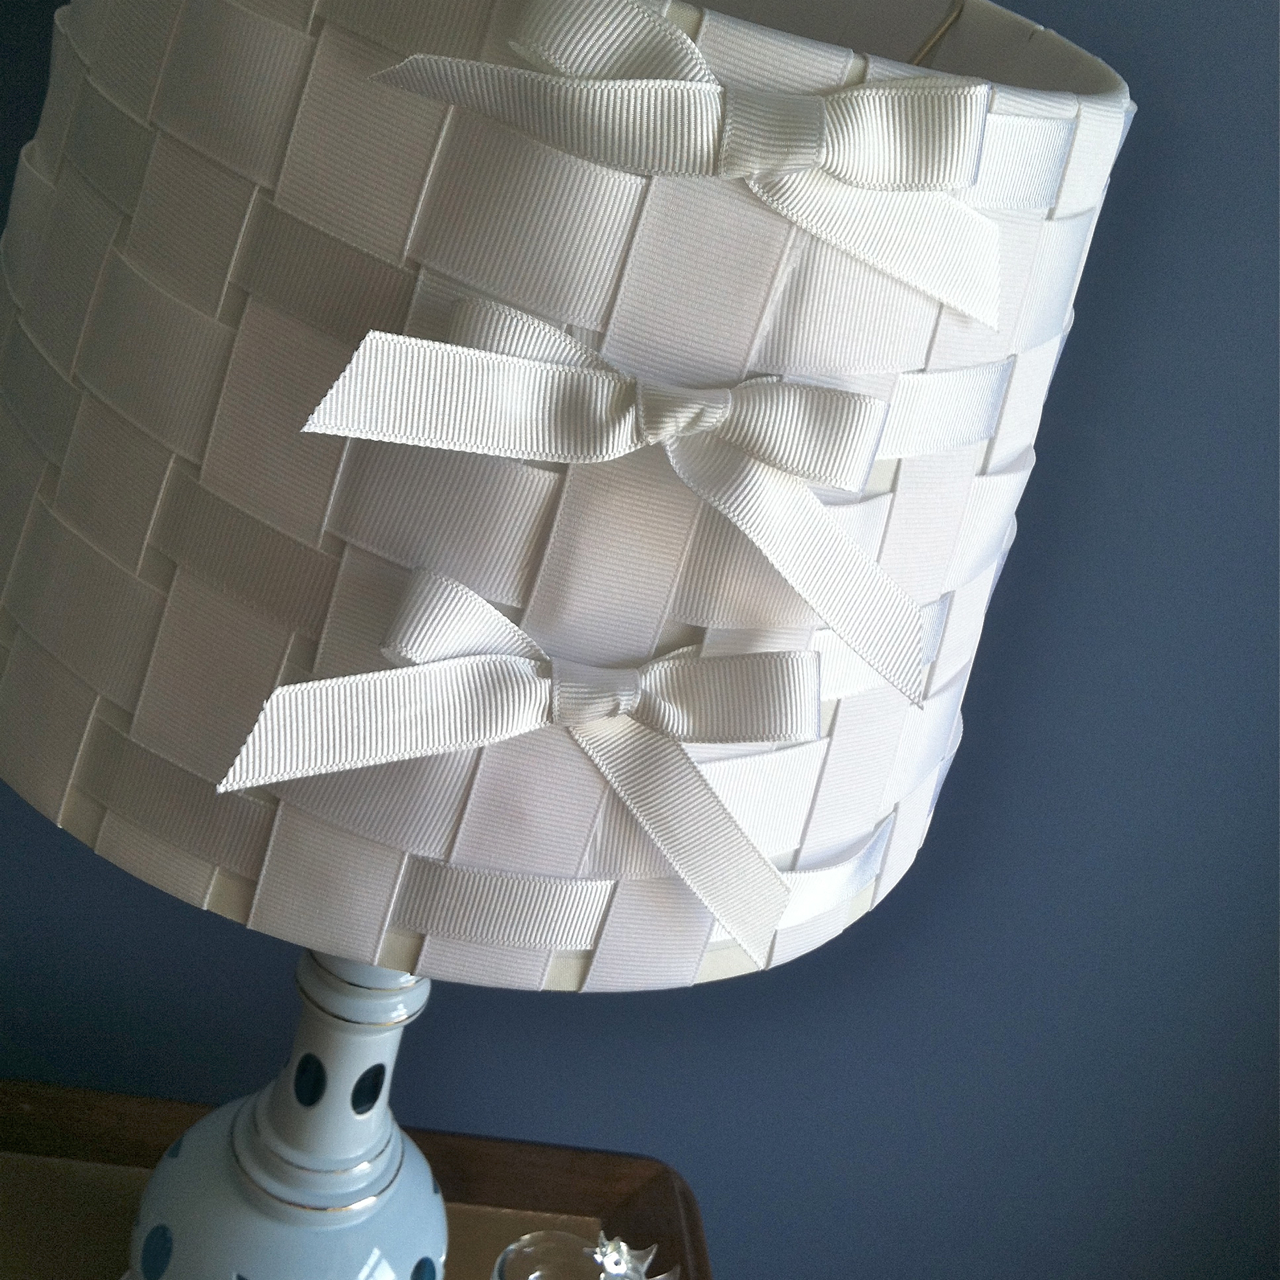 The craft tutor diy lampshade - Diy lamp shade ...